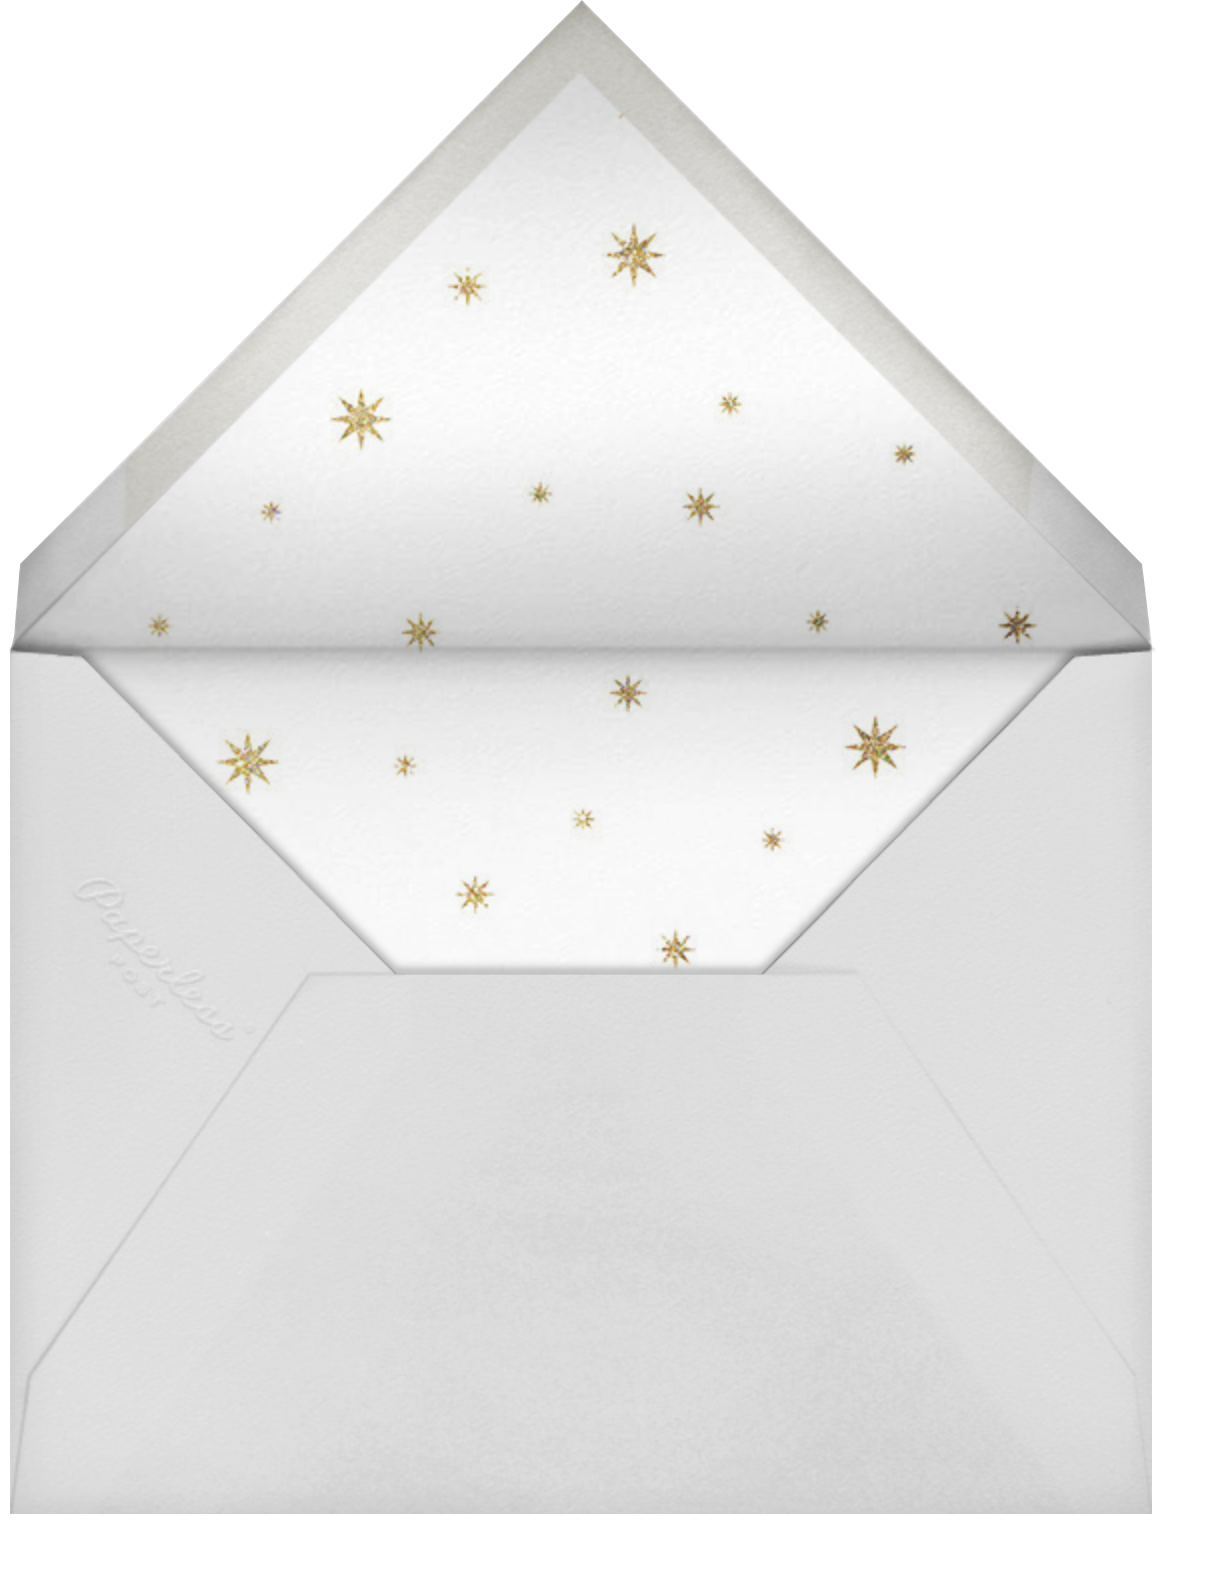 Do Drop By Bears - Paperless Post - New Year's Eve - envelope back